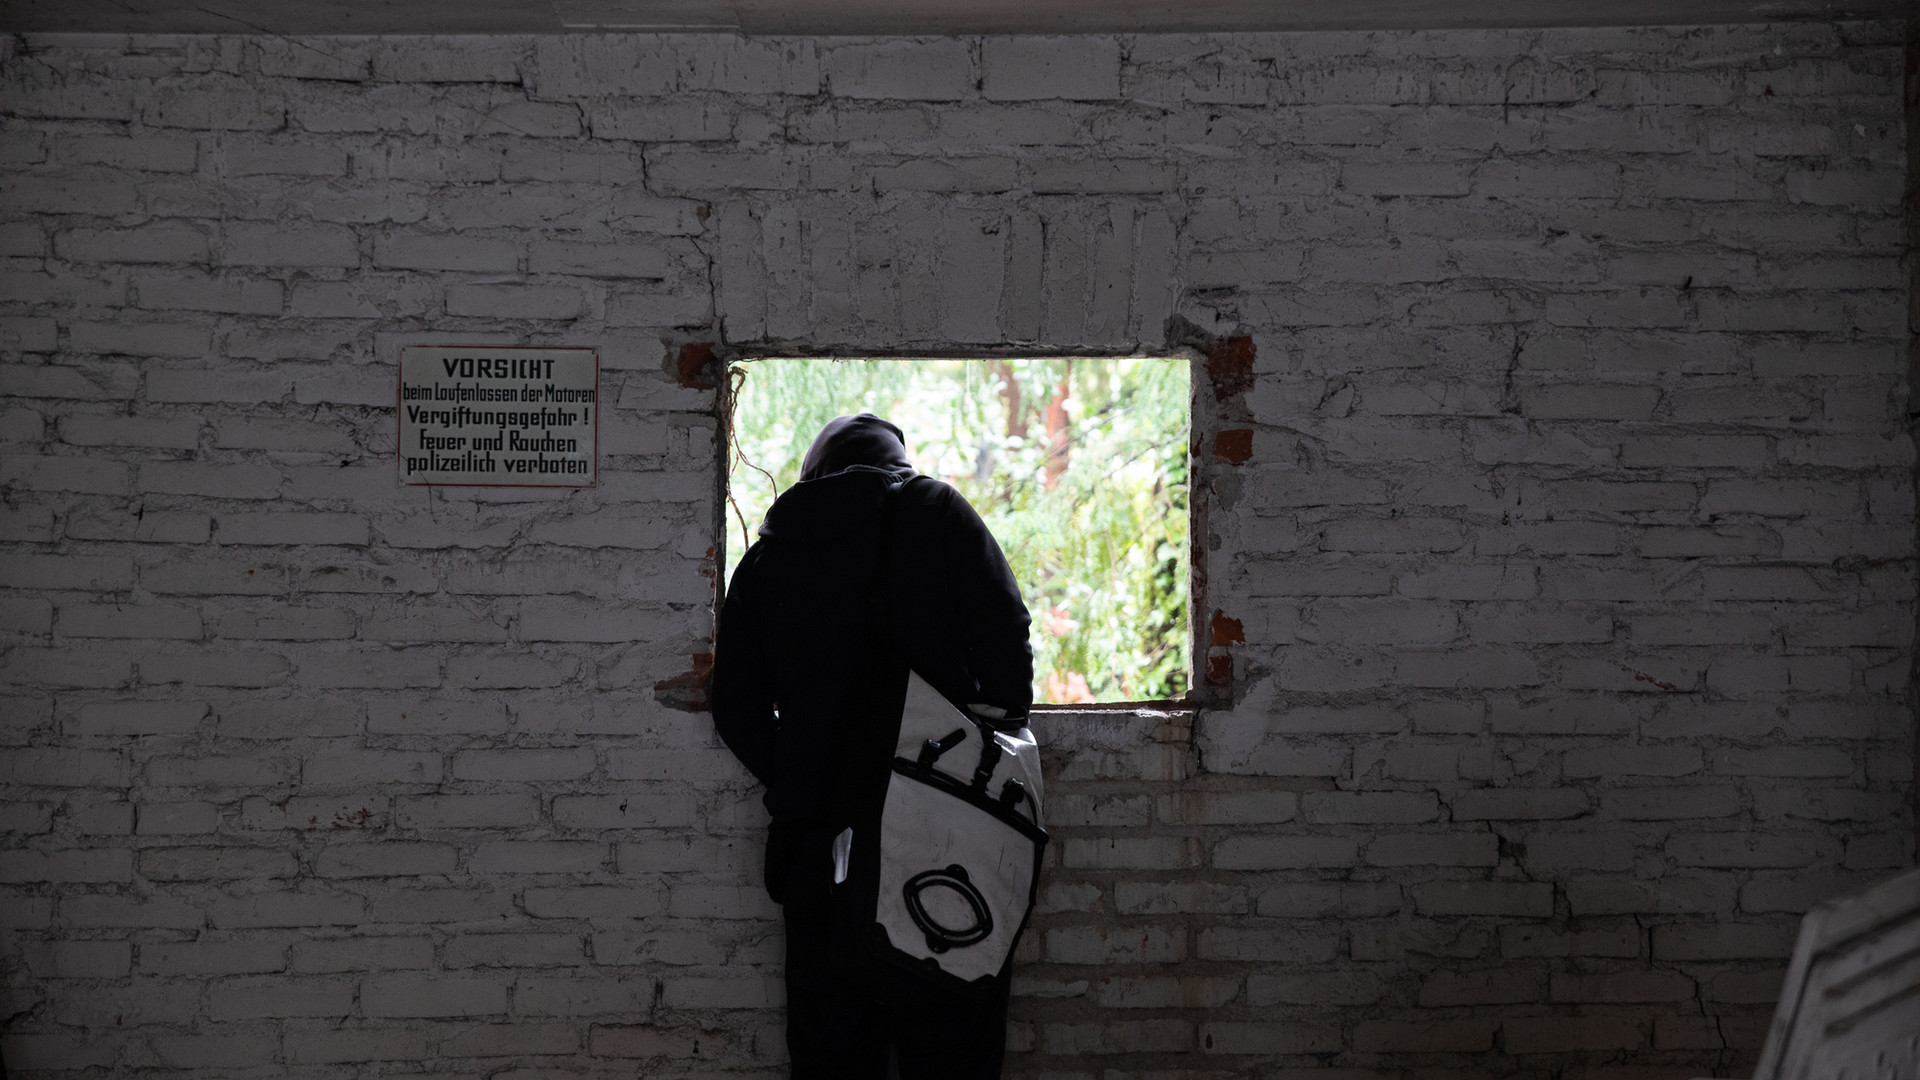 An activist looks through the back of the garage window into the backyard in a squatted house.